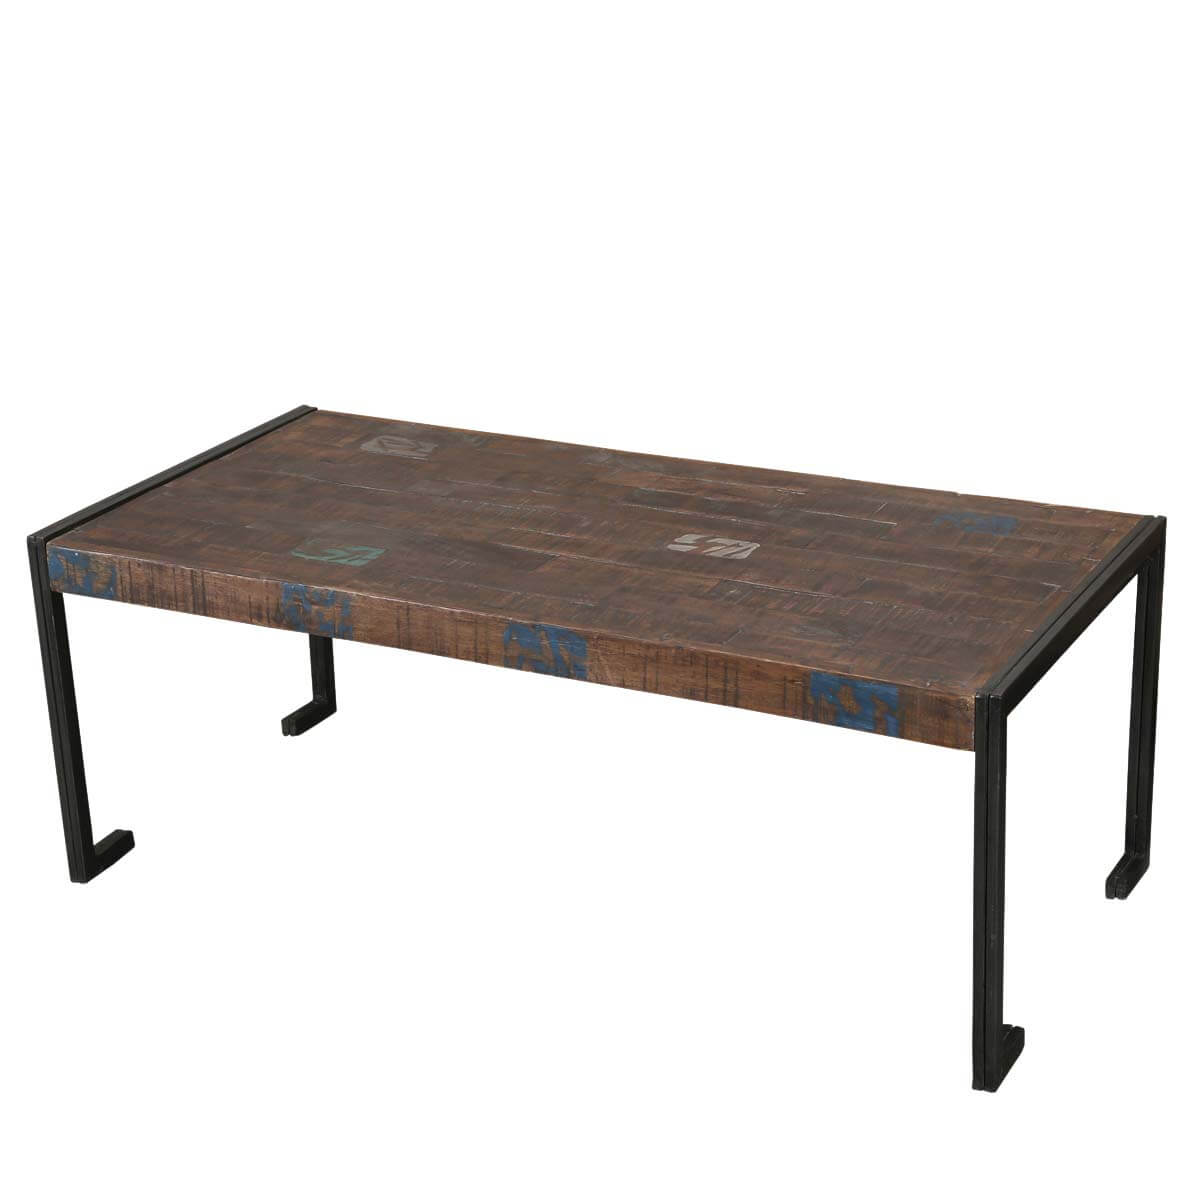 Philadelphia Reclaimed Wood Industrial Metal Frame Rustic Coffee Table: rustic wood and metal coffee table